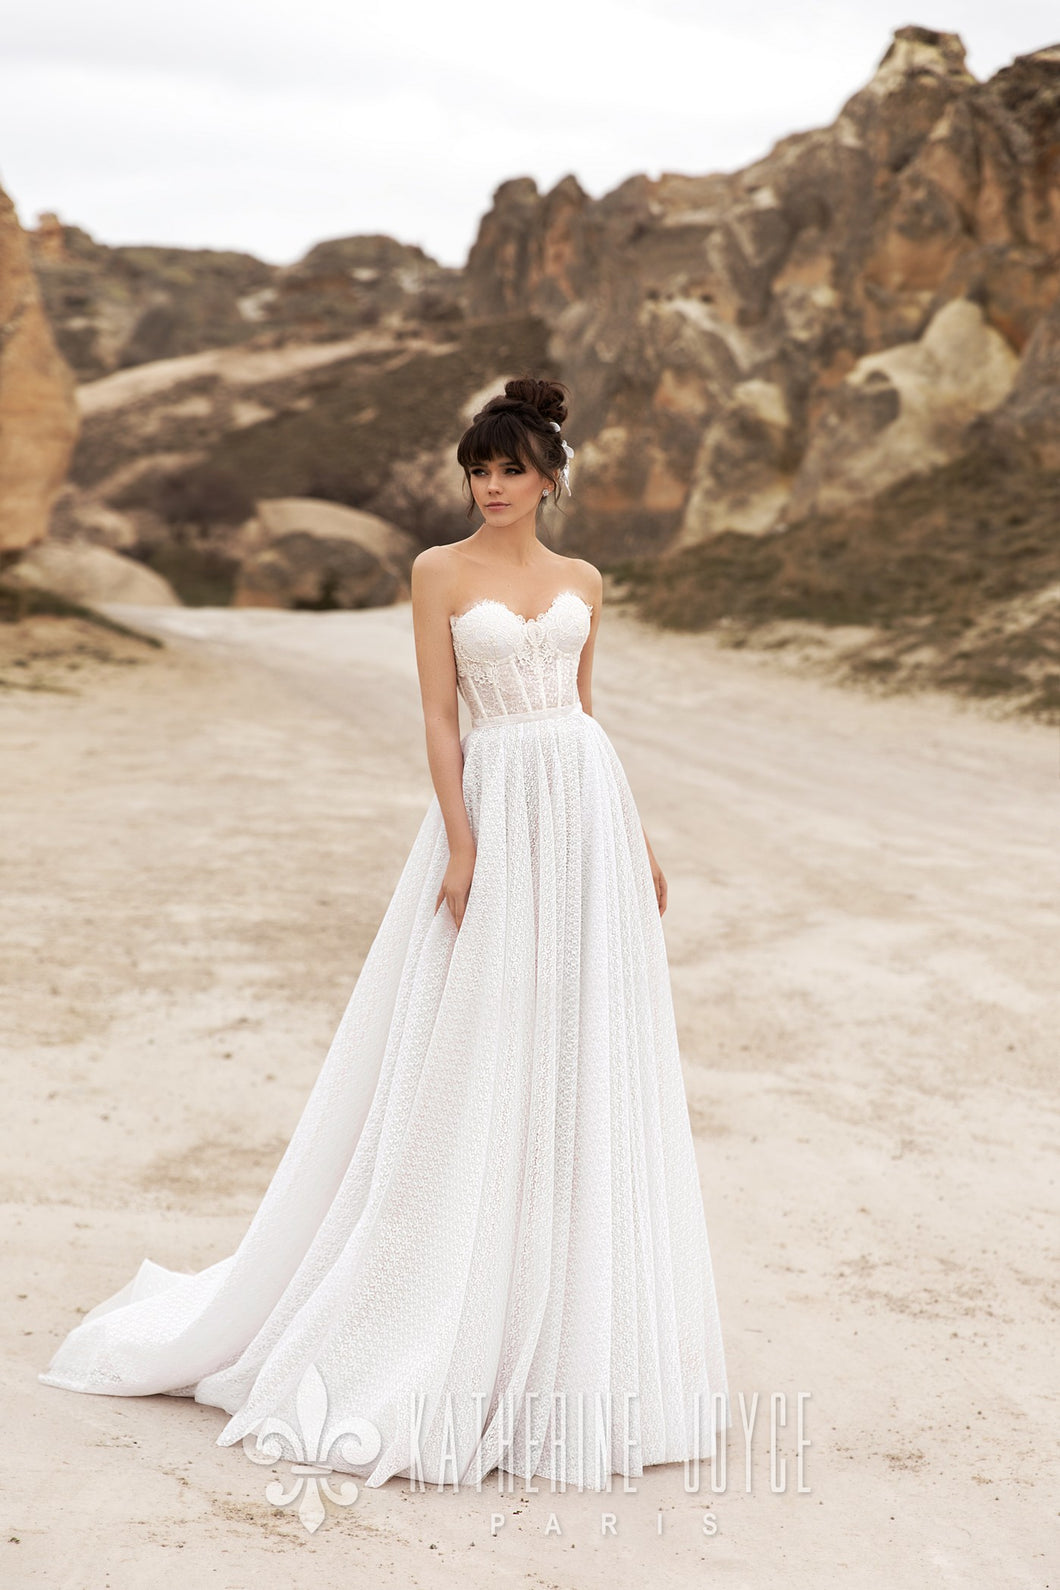 Wind Desert 'Zaidam' Katherine Joyce Paris RTW T 209-241 Ready To Wear European Bridal Wedding Gown Designer Philippines